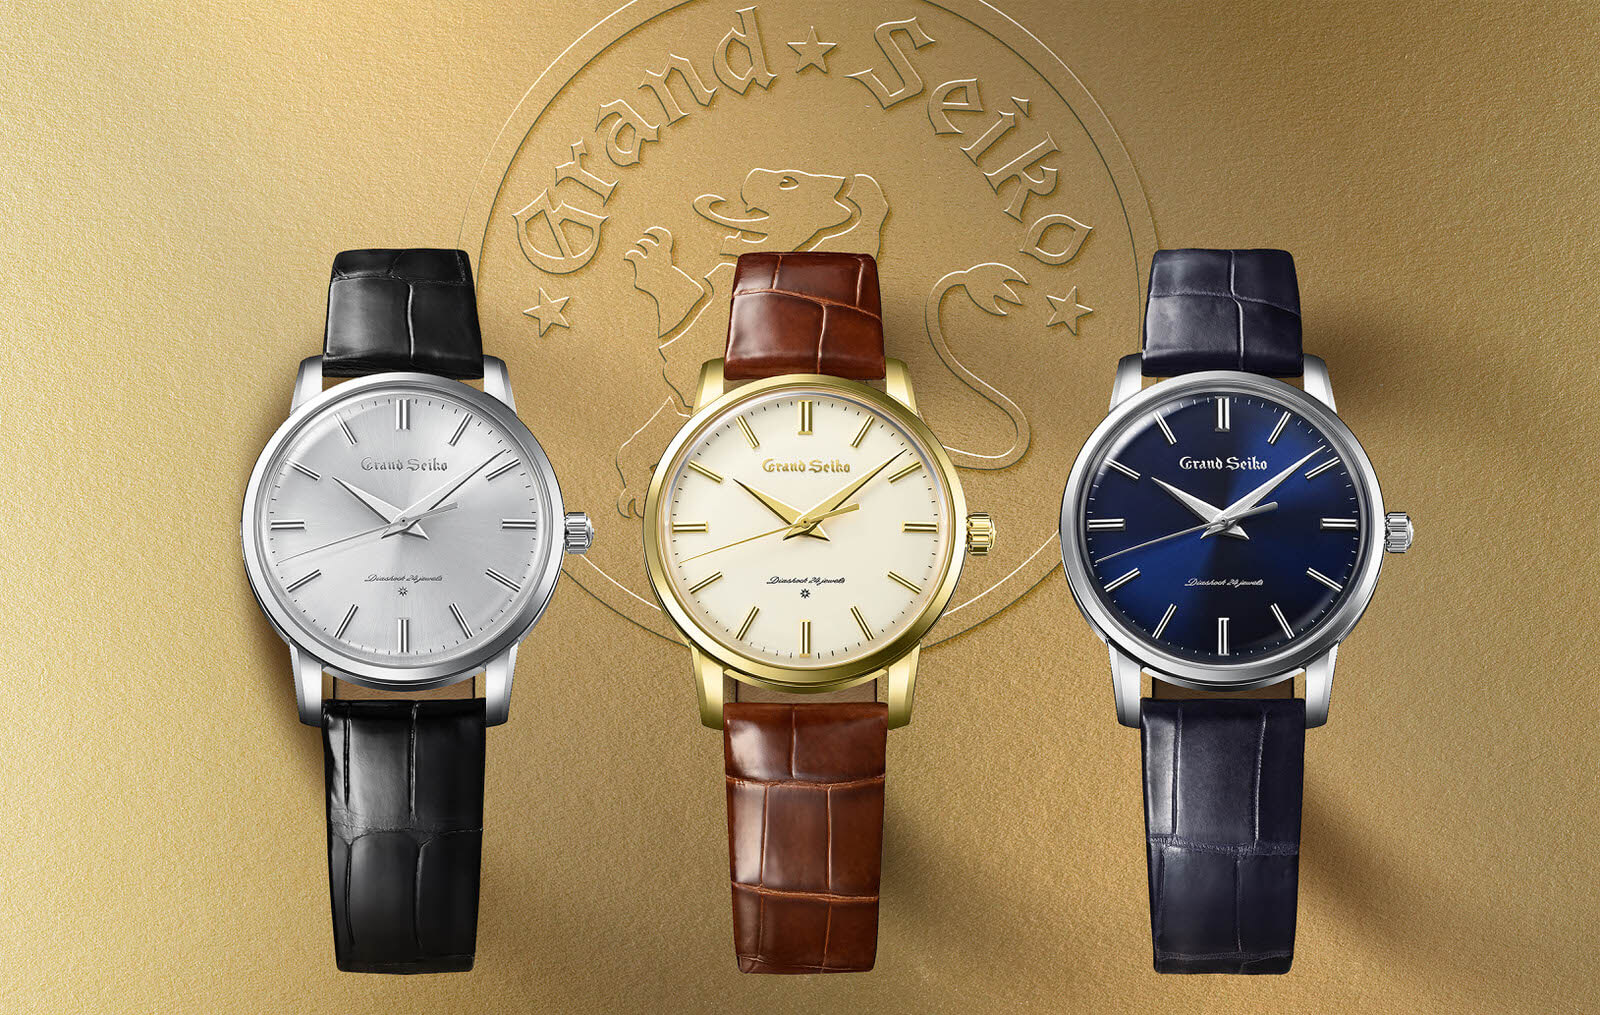 Grand Seiko 1960 Recreación 60 Aniversario portada